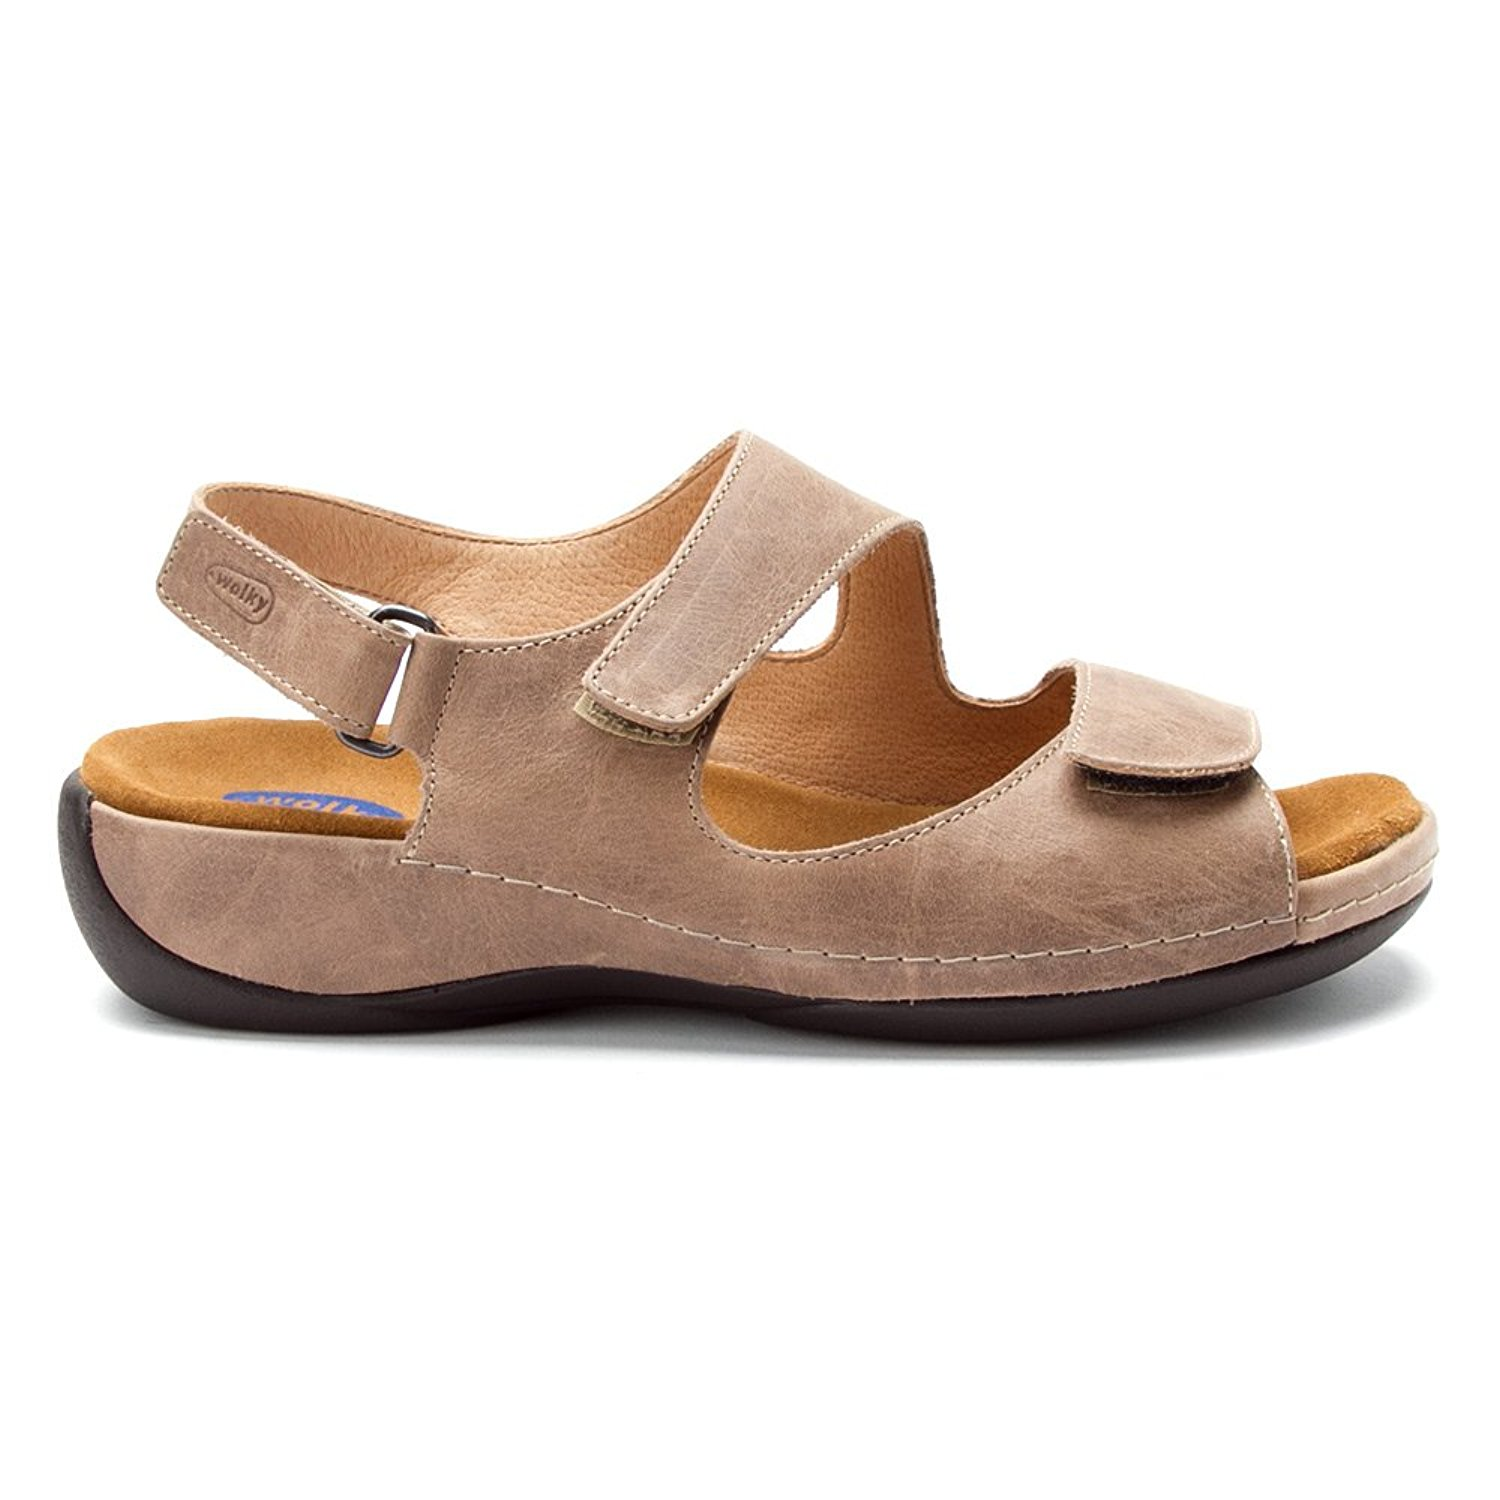 Wolky Comfort 00315 Sandals 00315 Comfort Liana 7427a9